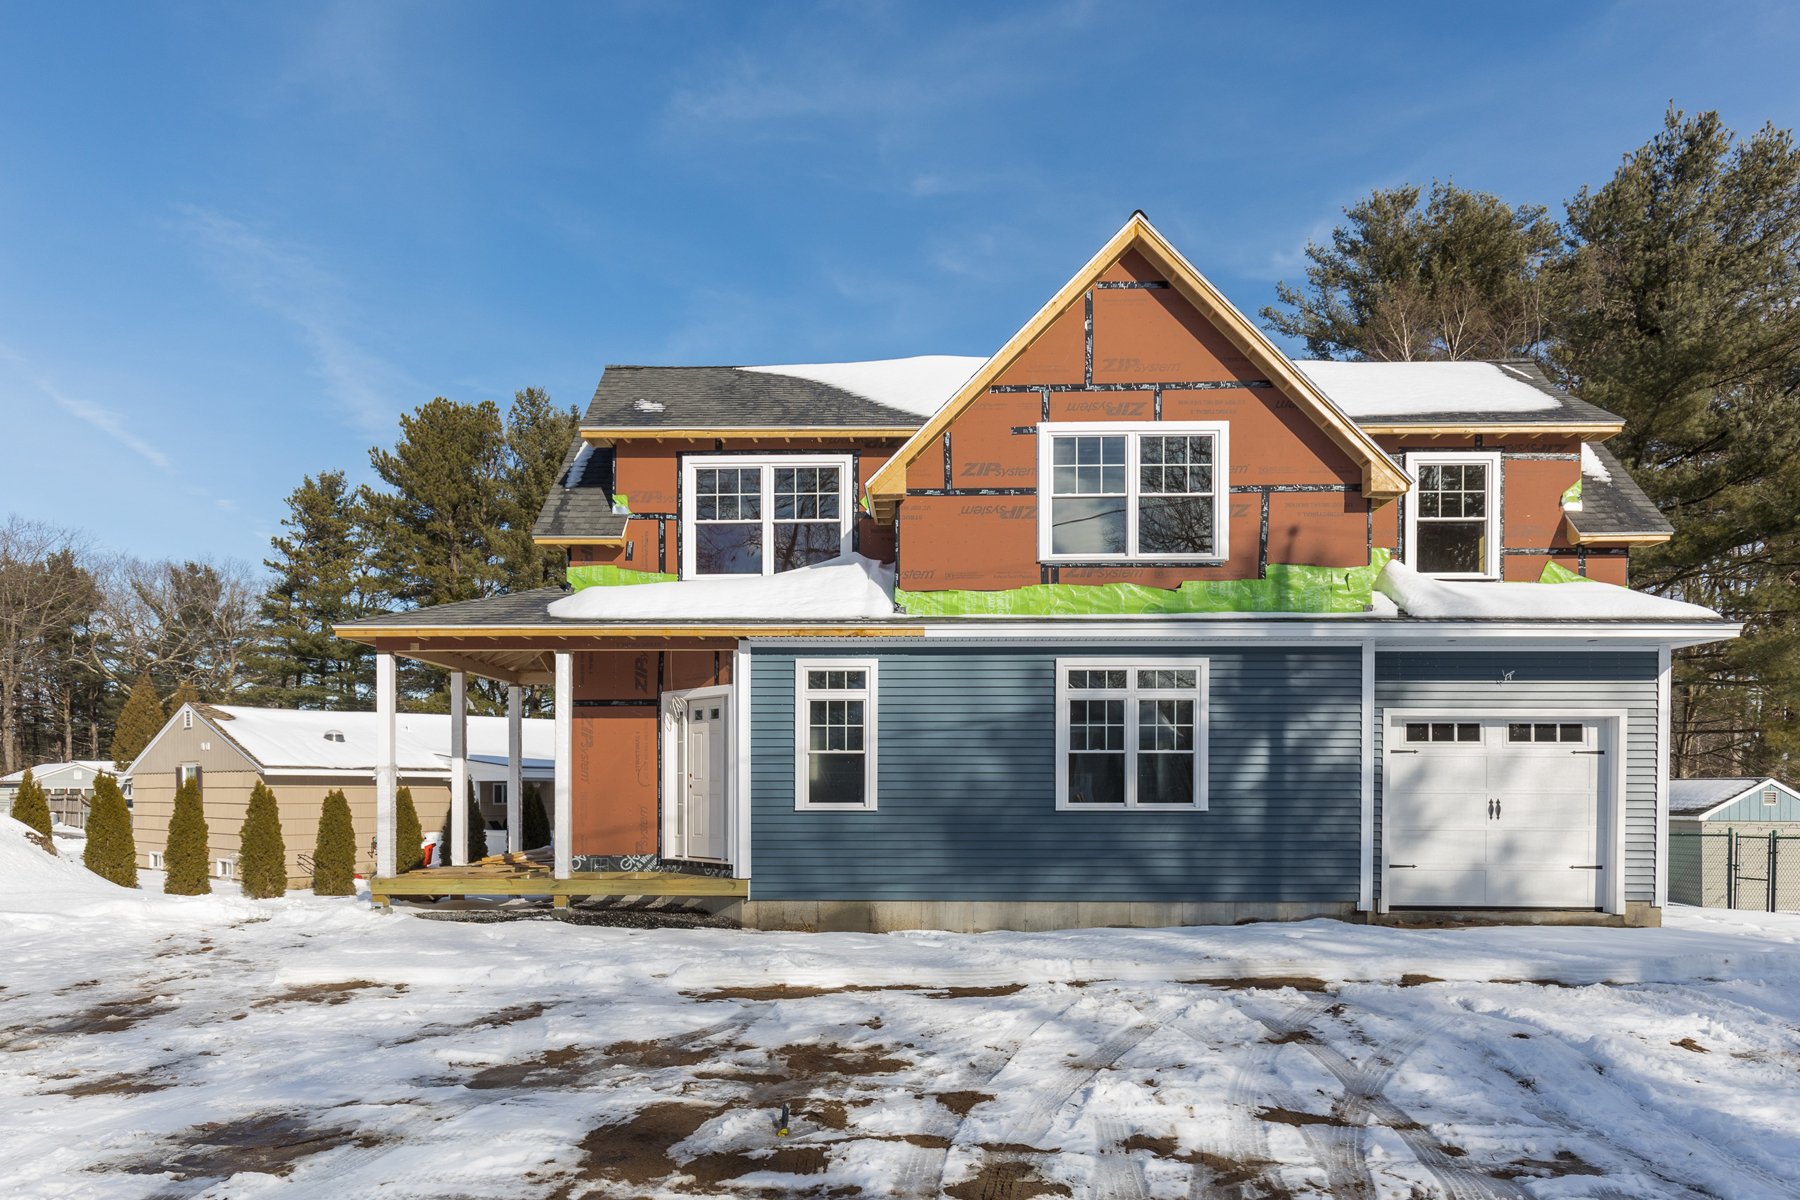 Single Family Home for Sale at New Construction in Moody's Bourne Fields 3 Cranberry Street Wells, Maine, 04090 United States